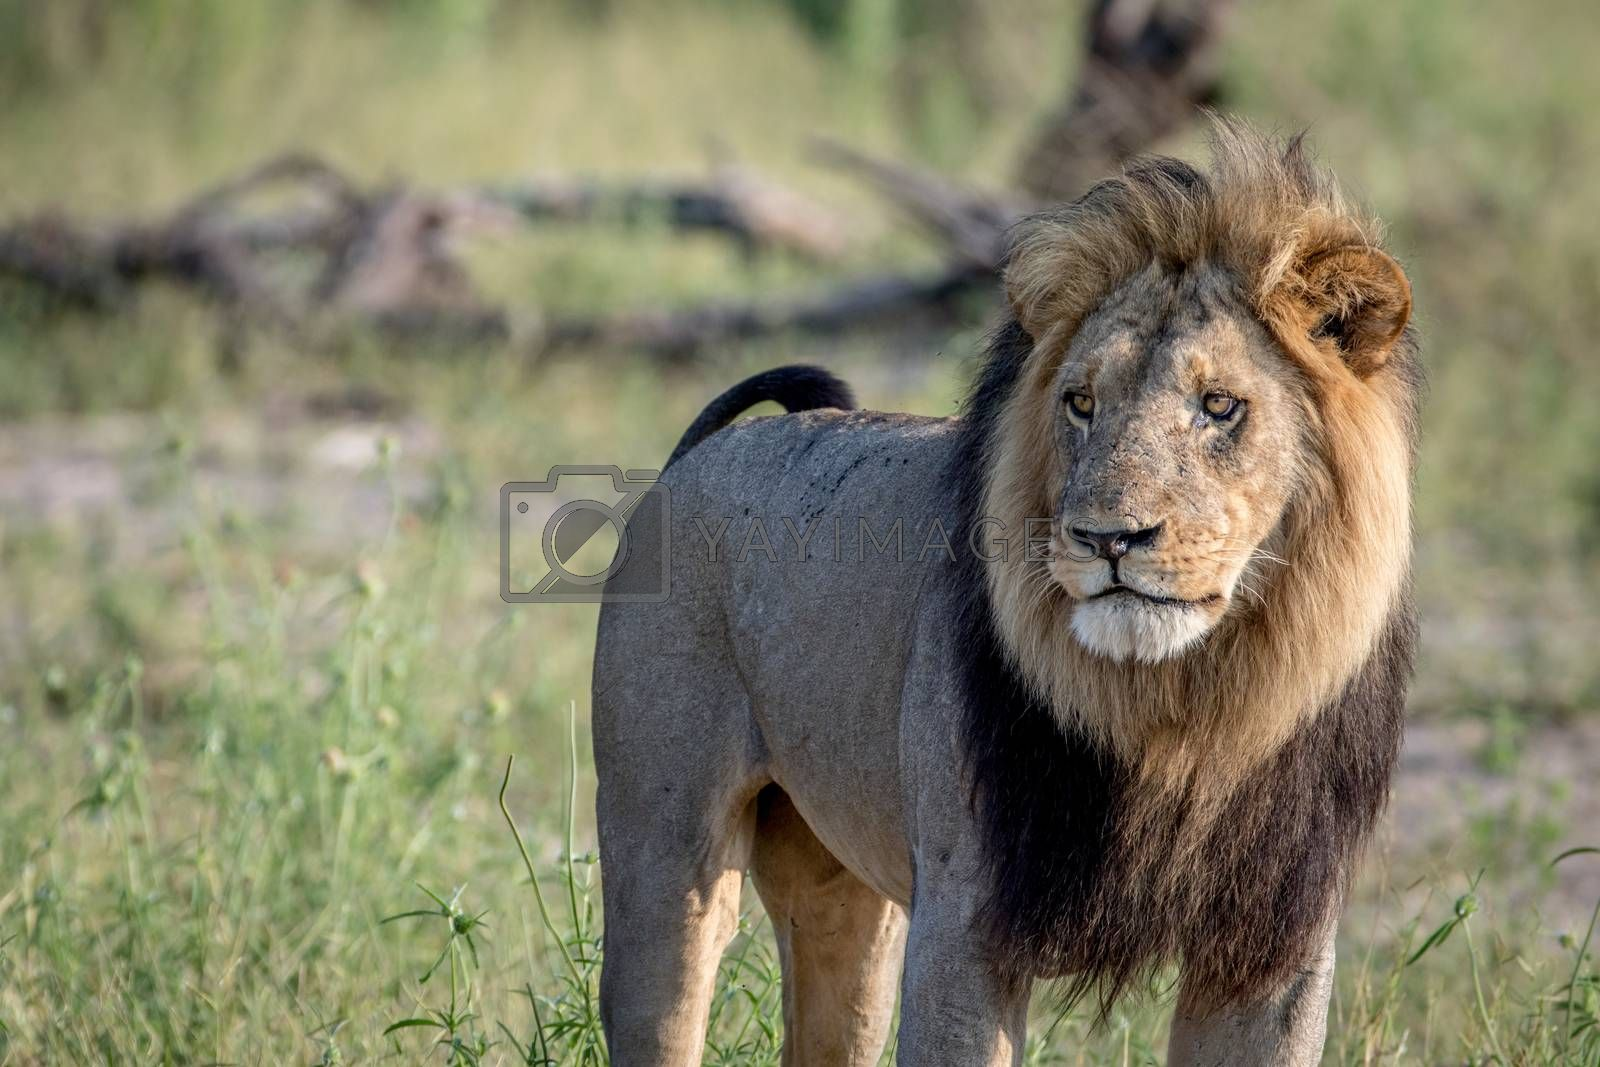 Big male Lion standing in the grass in the Chobe National Park, Botswana.